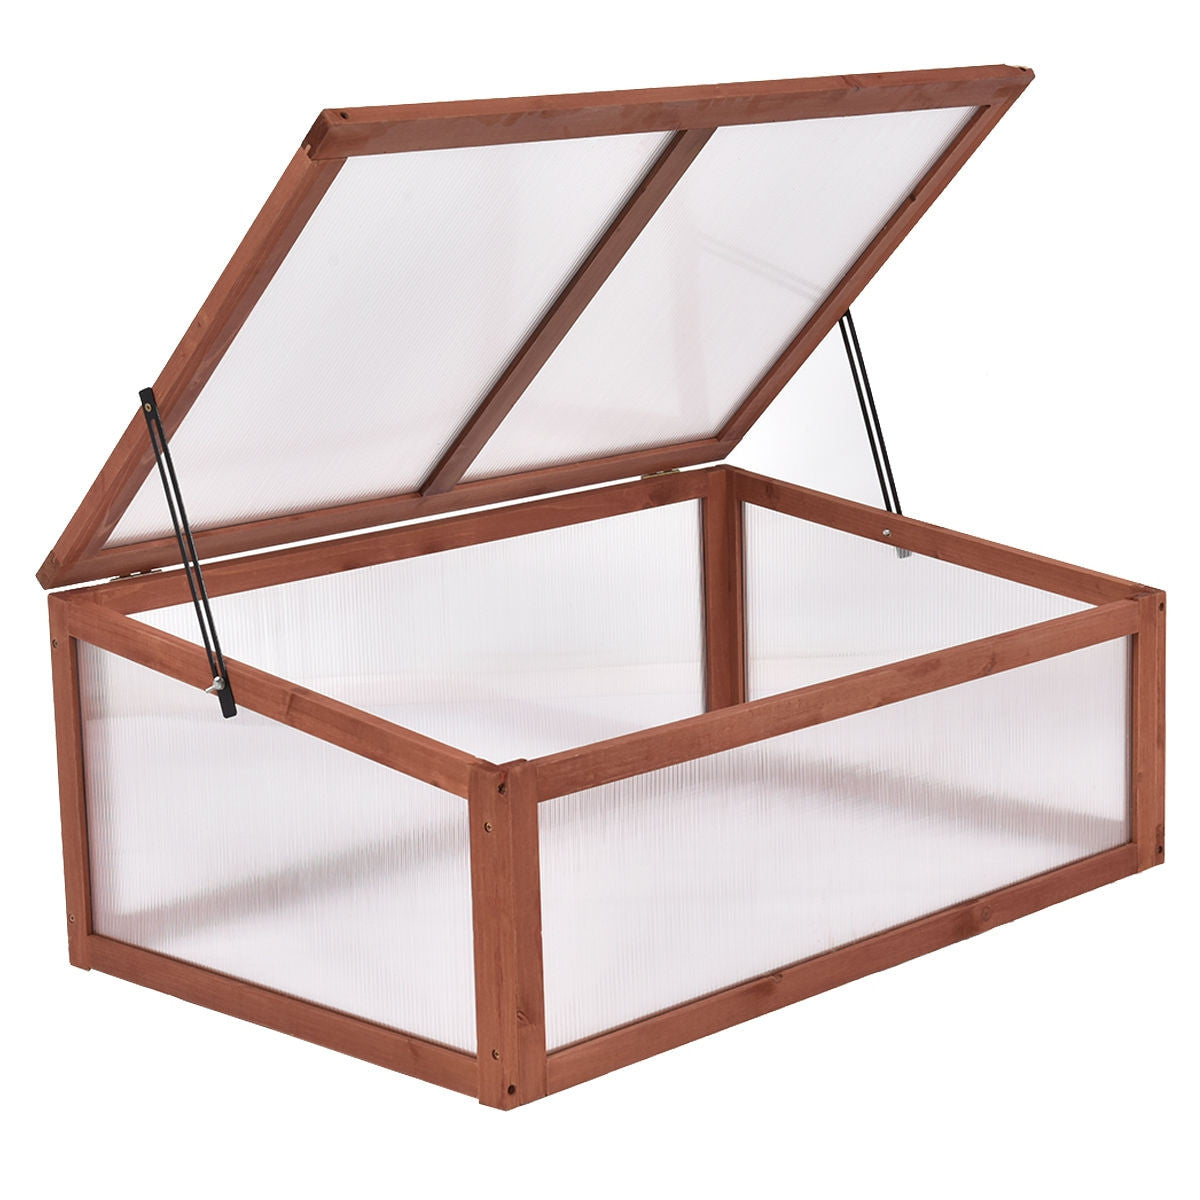 Portable Greenhouse Wooden Small Mini Garden Greenhouse - Morealis